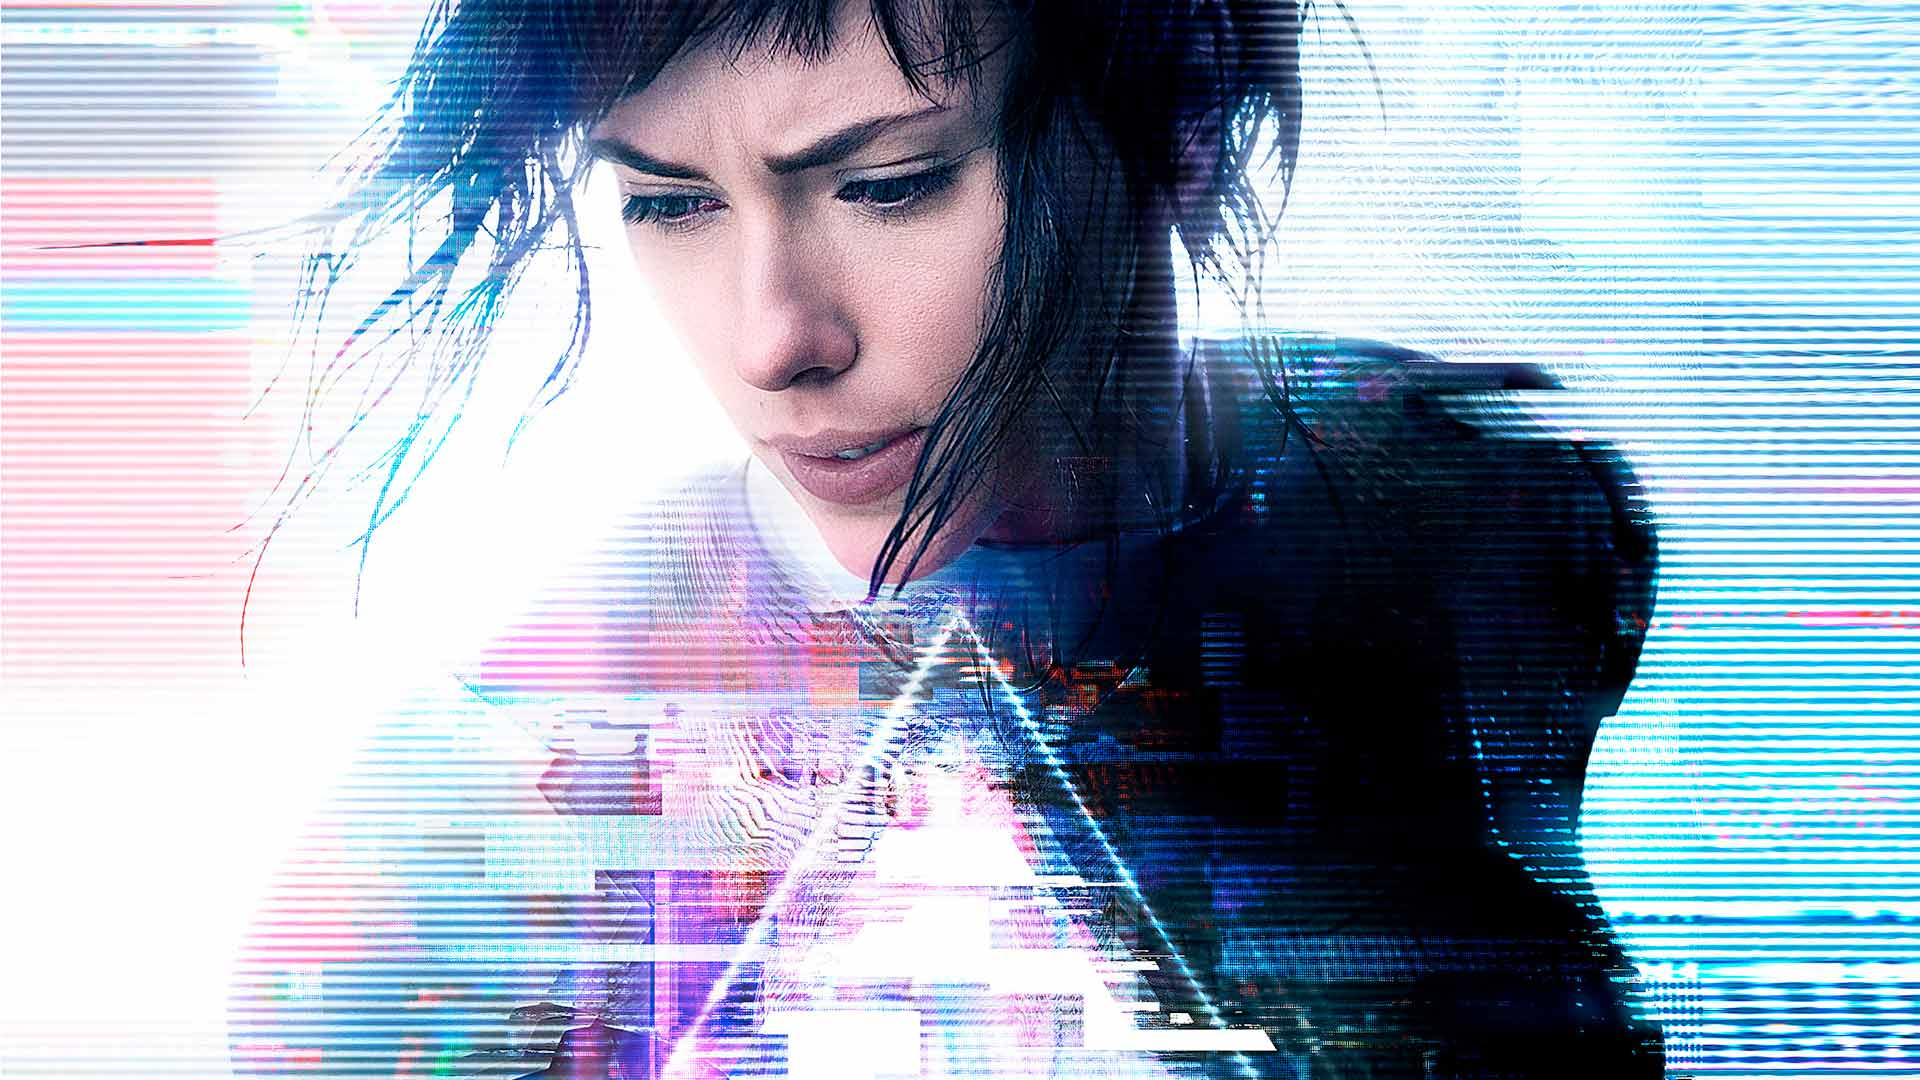 Ghost in the Shell  essentially the ghost can exist independently of a physical body visual identification of ethnicity is no longer relevant  Ghost in the Shell premiered in Tokyo on March 16 2017 and was released in the United States on March 31 2017 in 2D 3D and IMAX 3D